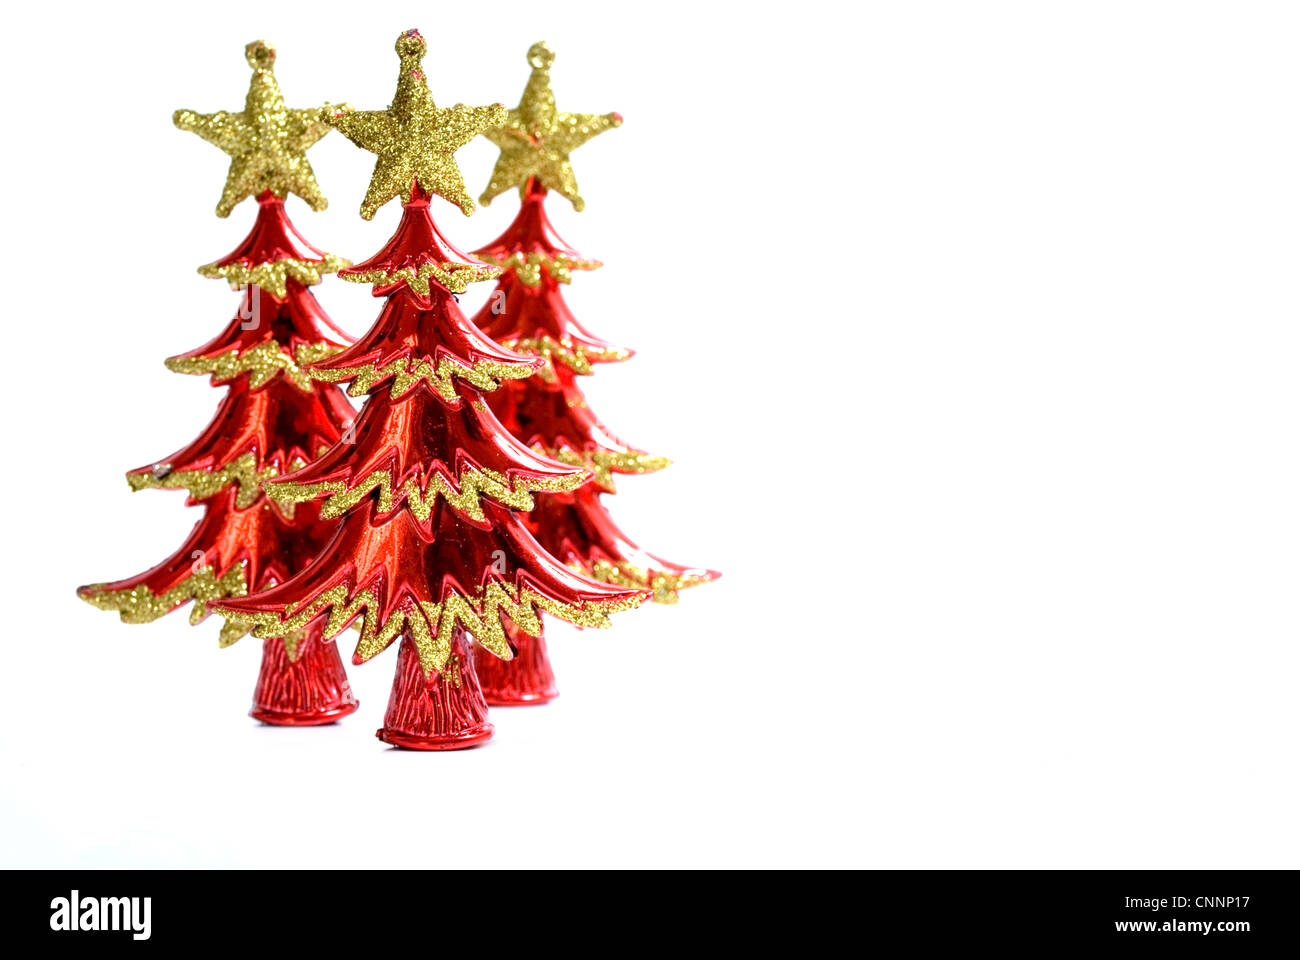 Three Christmas Tree Ornaments on a white background, text area. - Stock Image